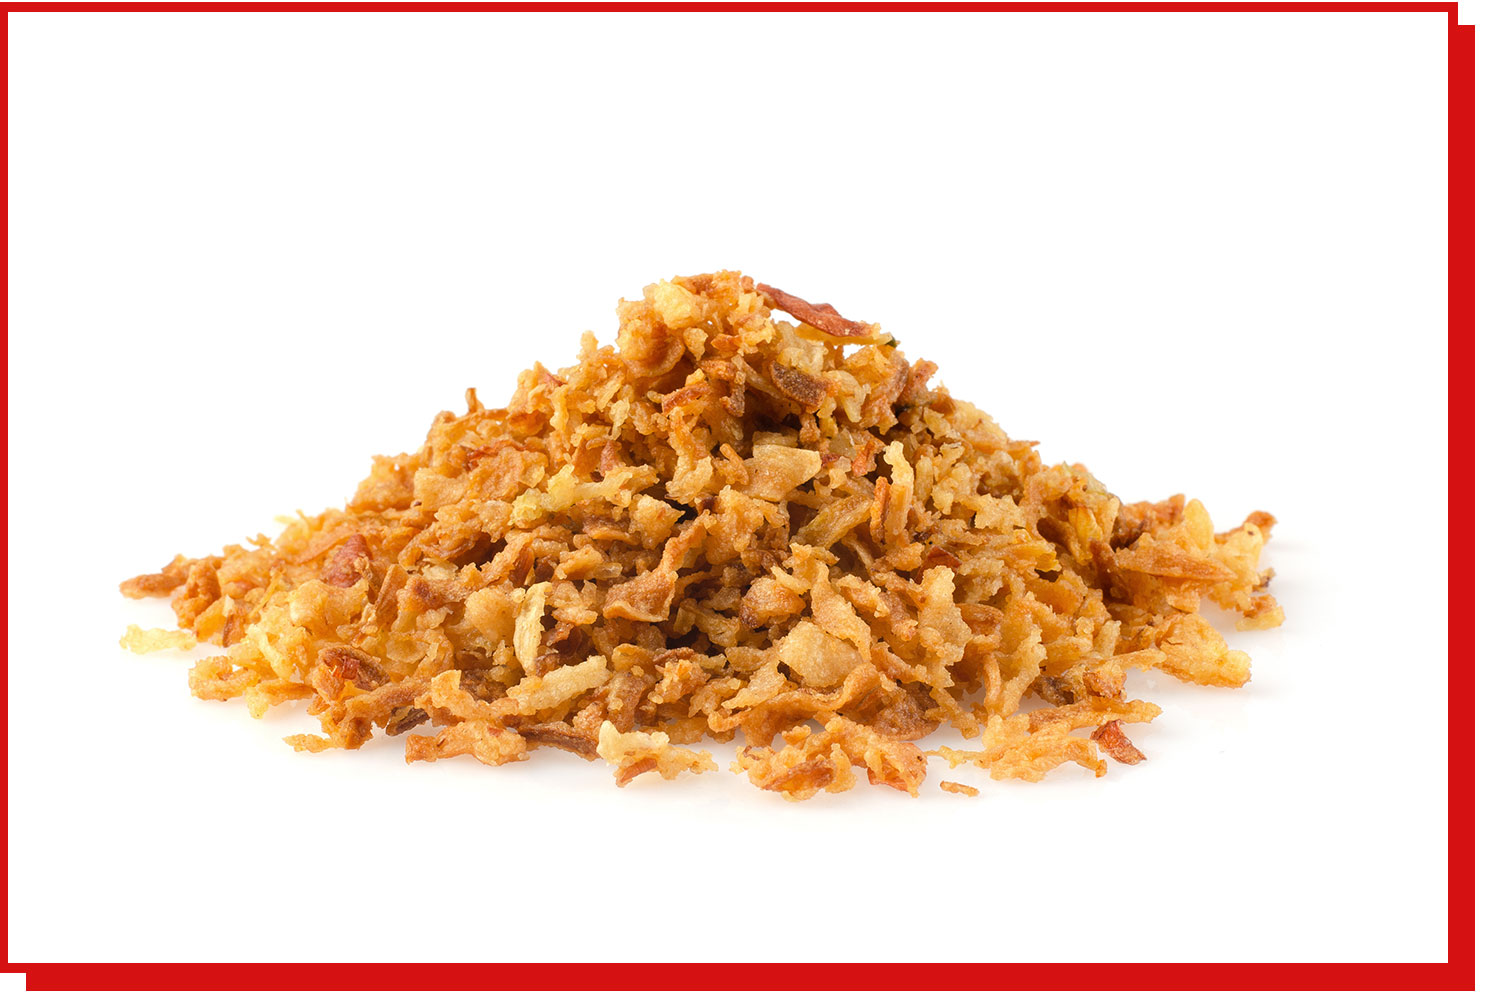 A pile of French fried onions on a white background.